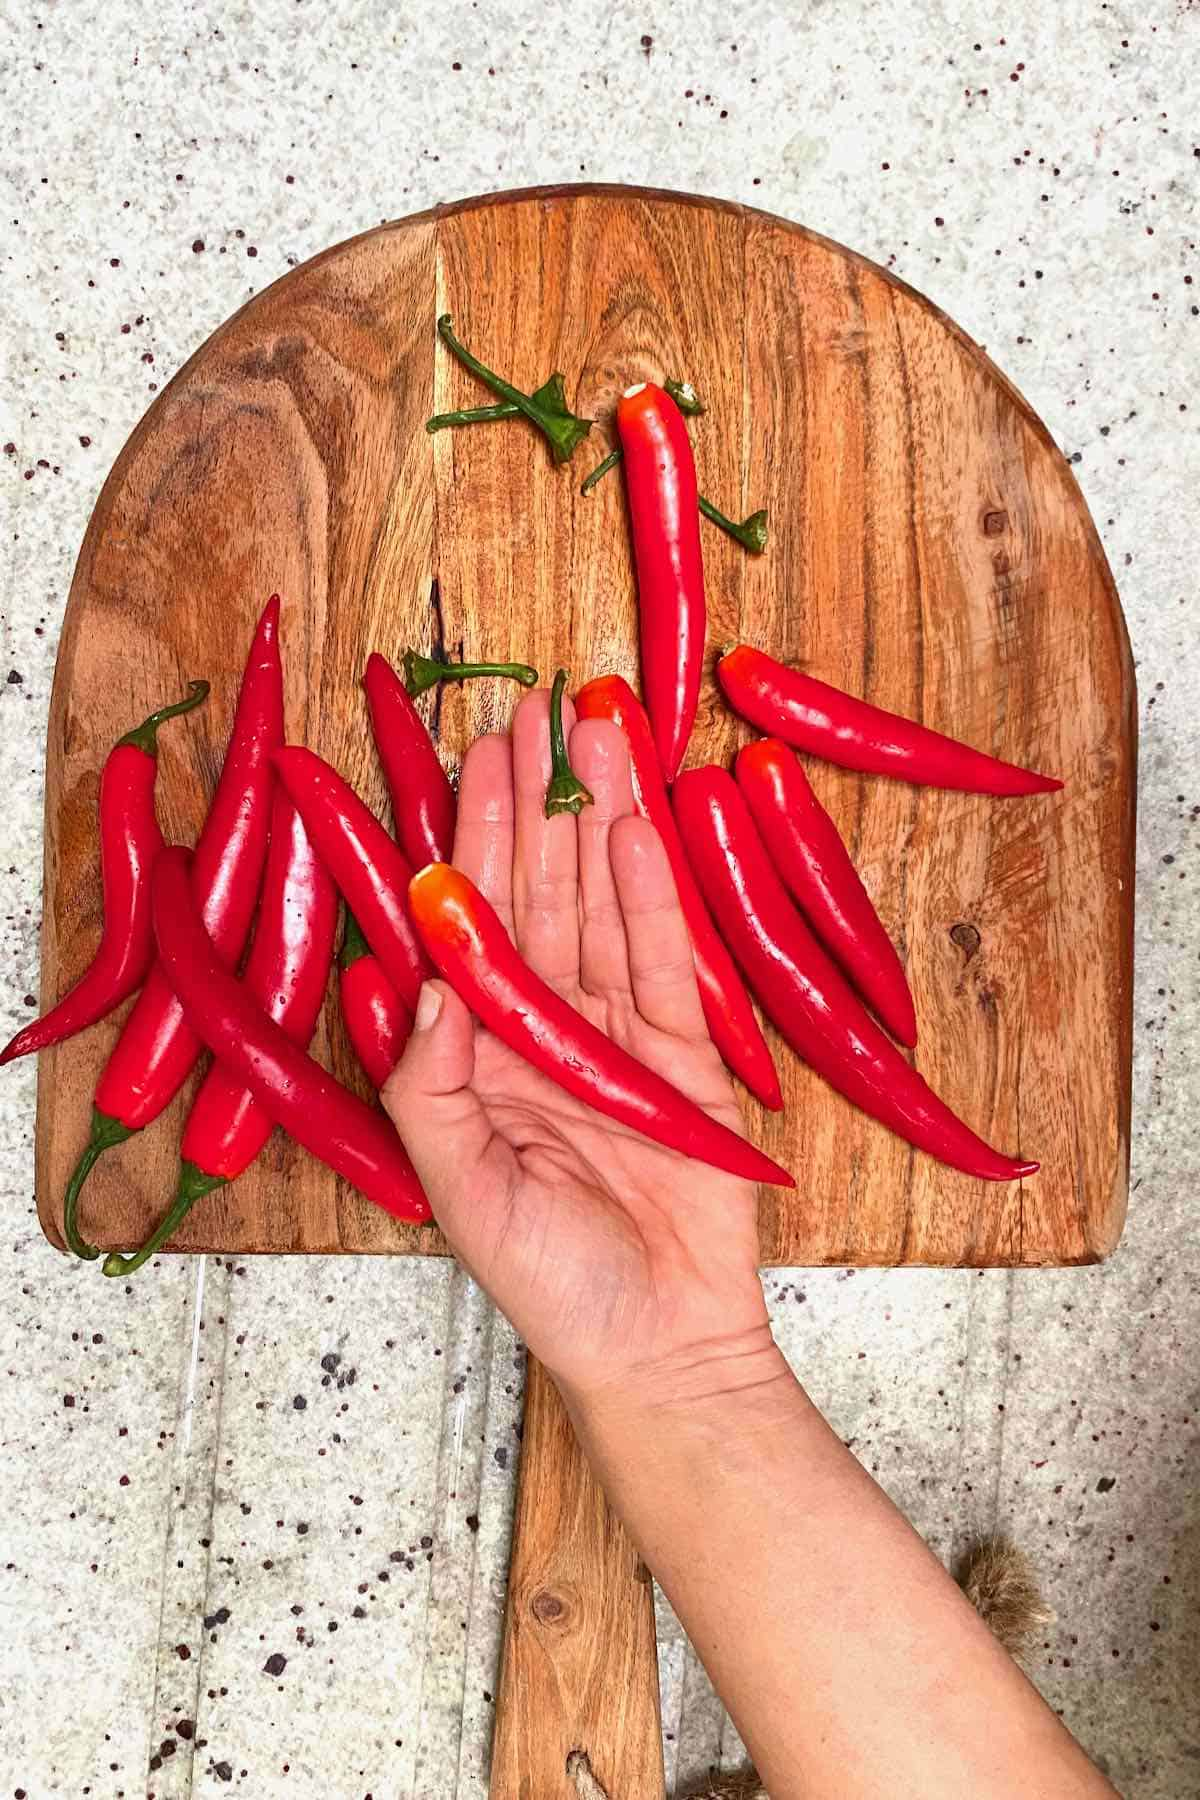 Removing the tops from red chilies